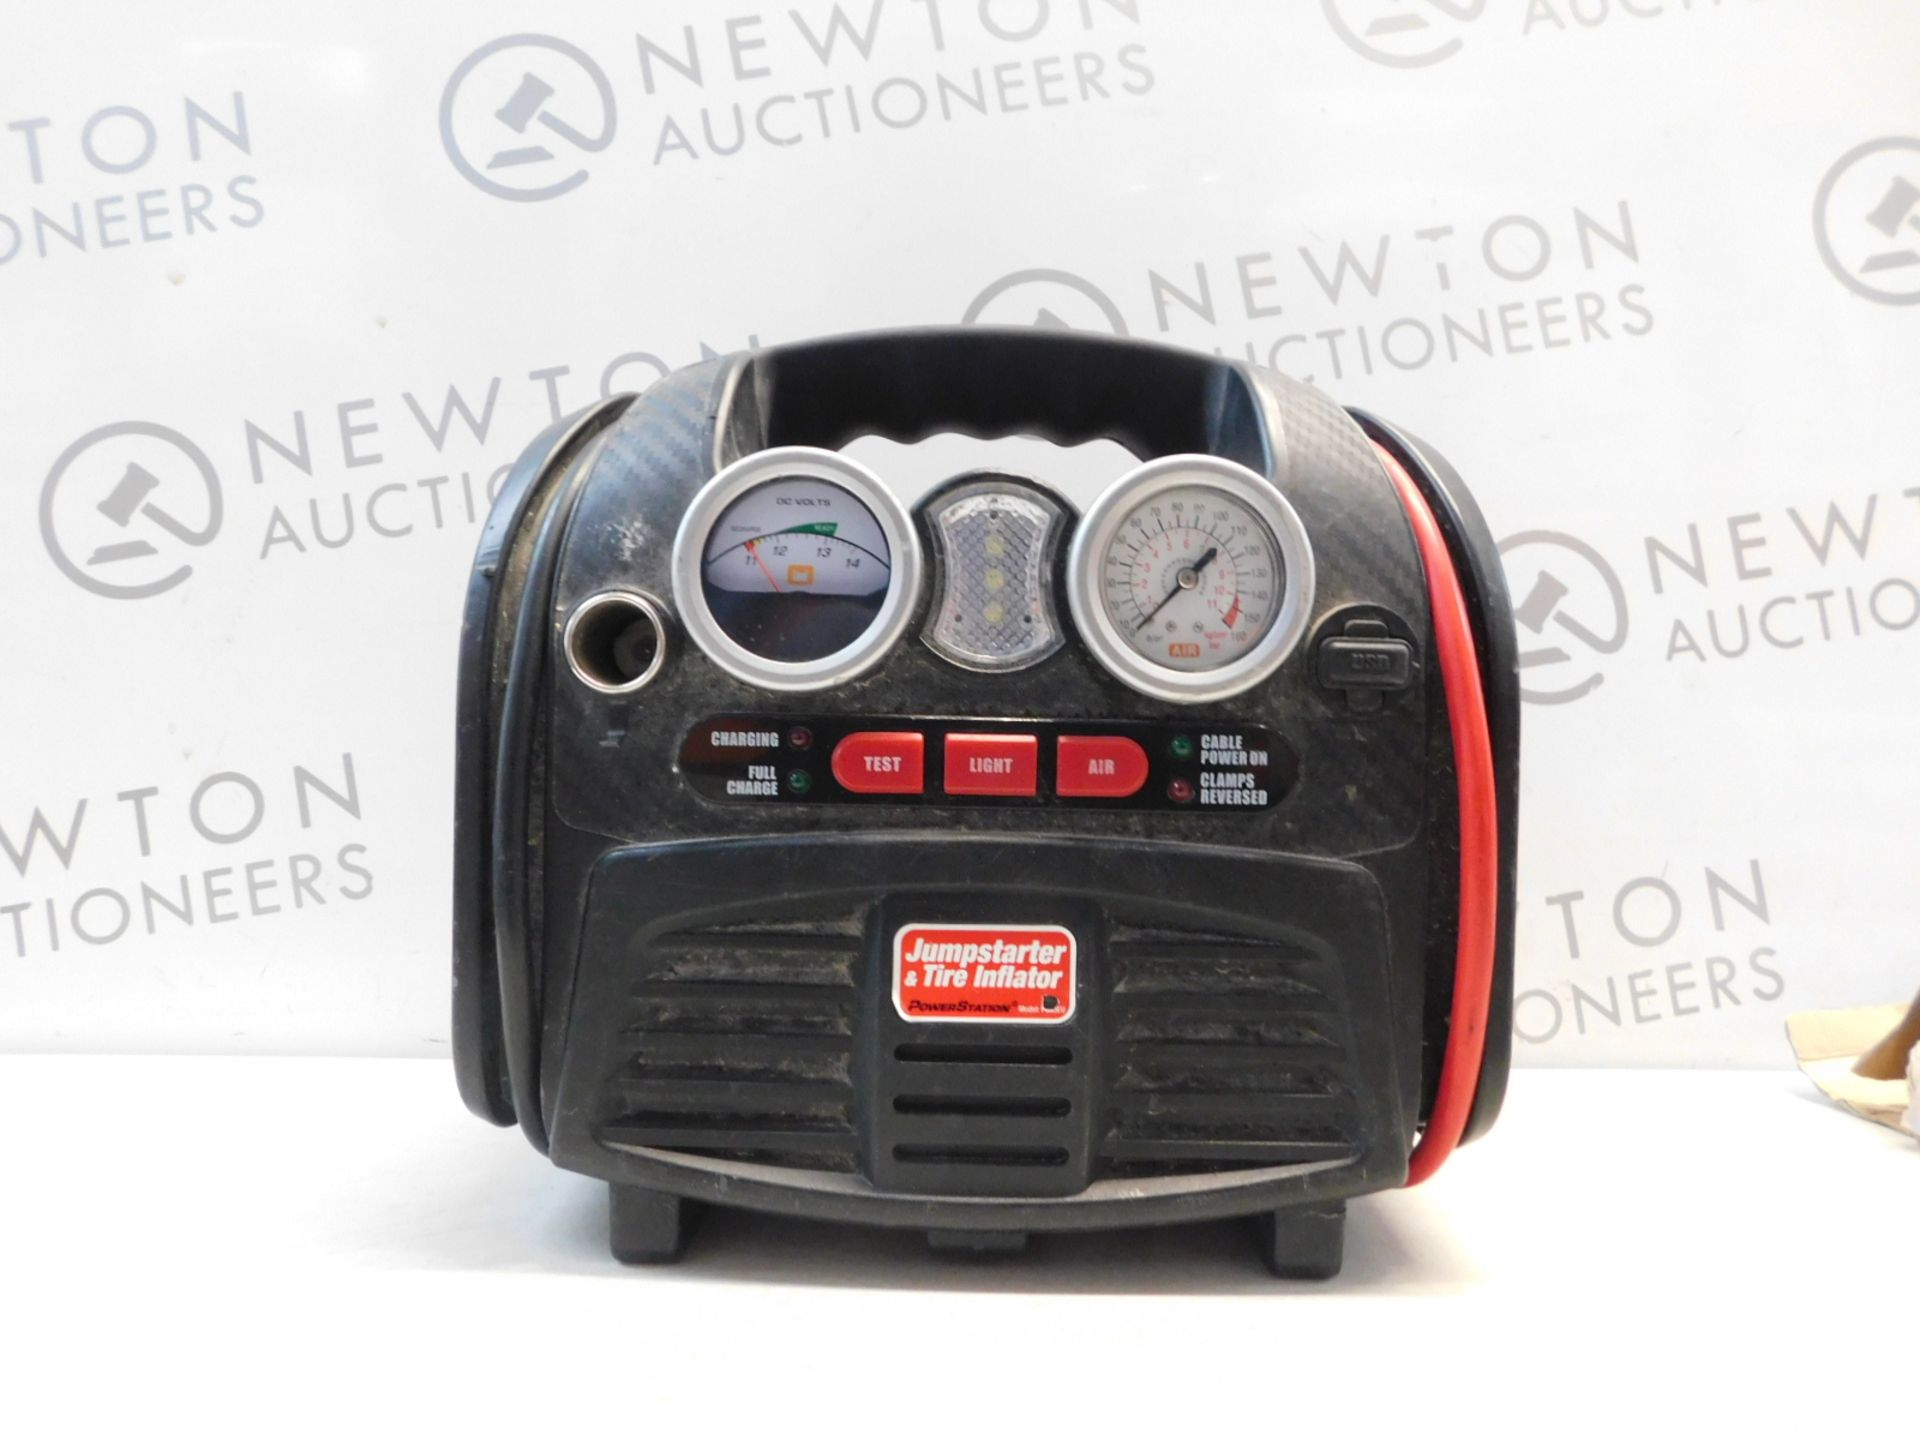 Lot 109 - 1 POWERSTATION PSX3 BATTERY JUMPSTARTER WITH BUILT IN LIGHT AND COMPRESSOR RRP £159